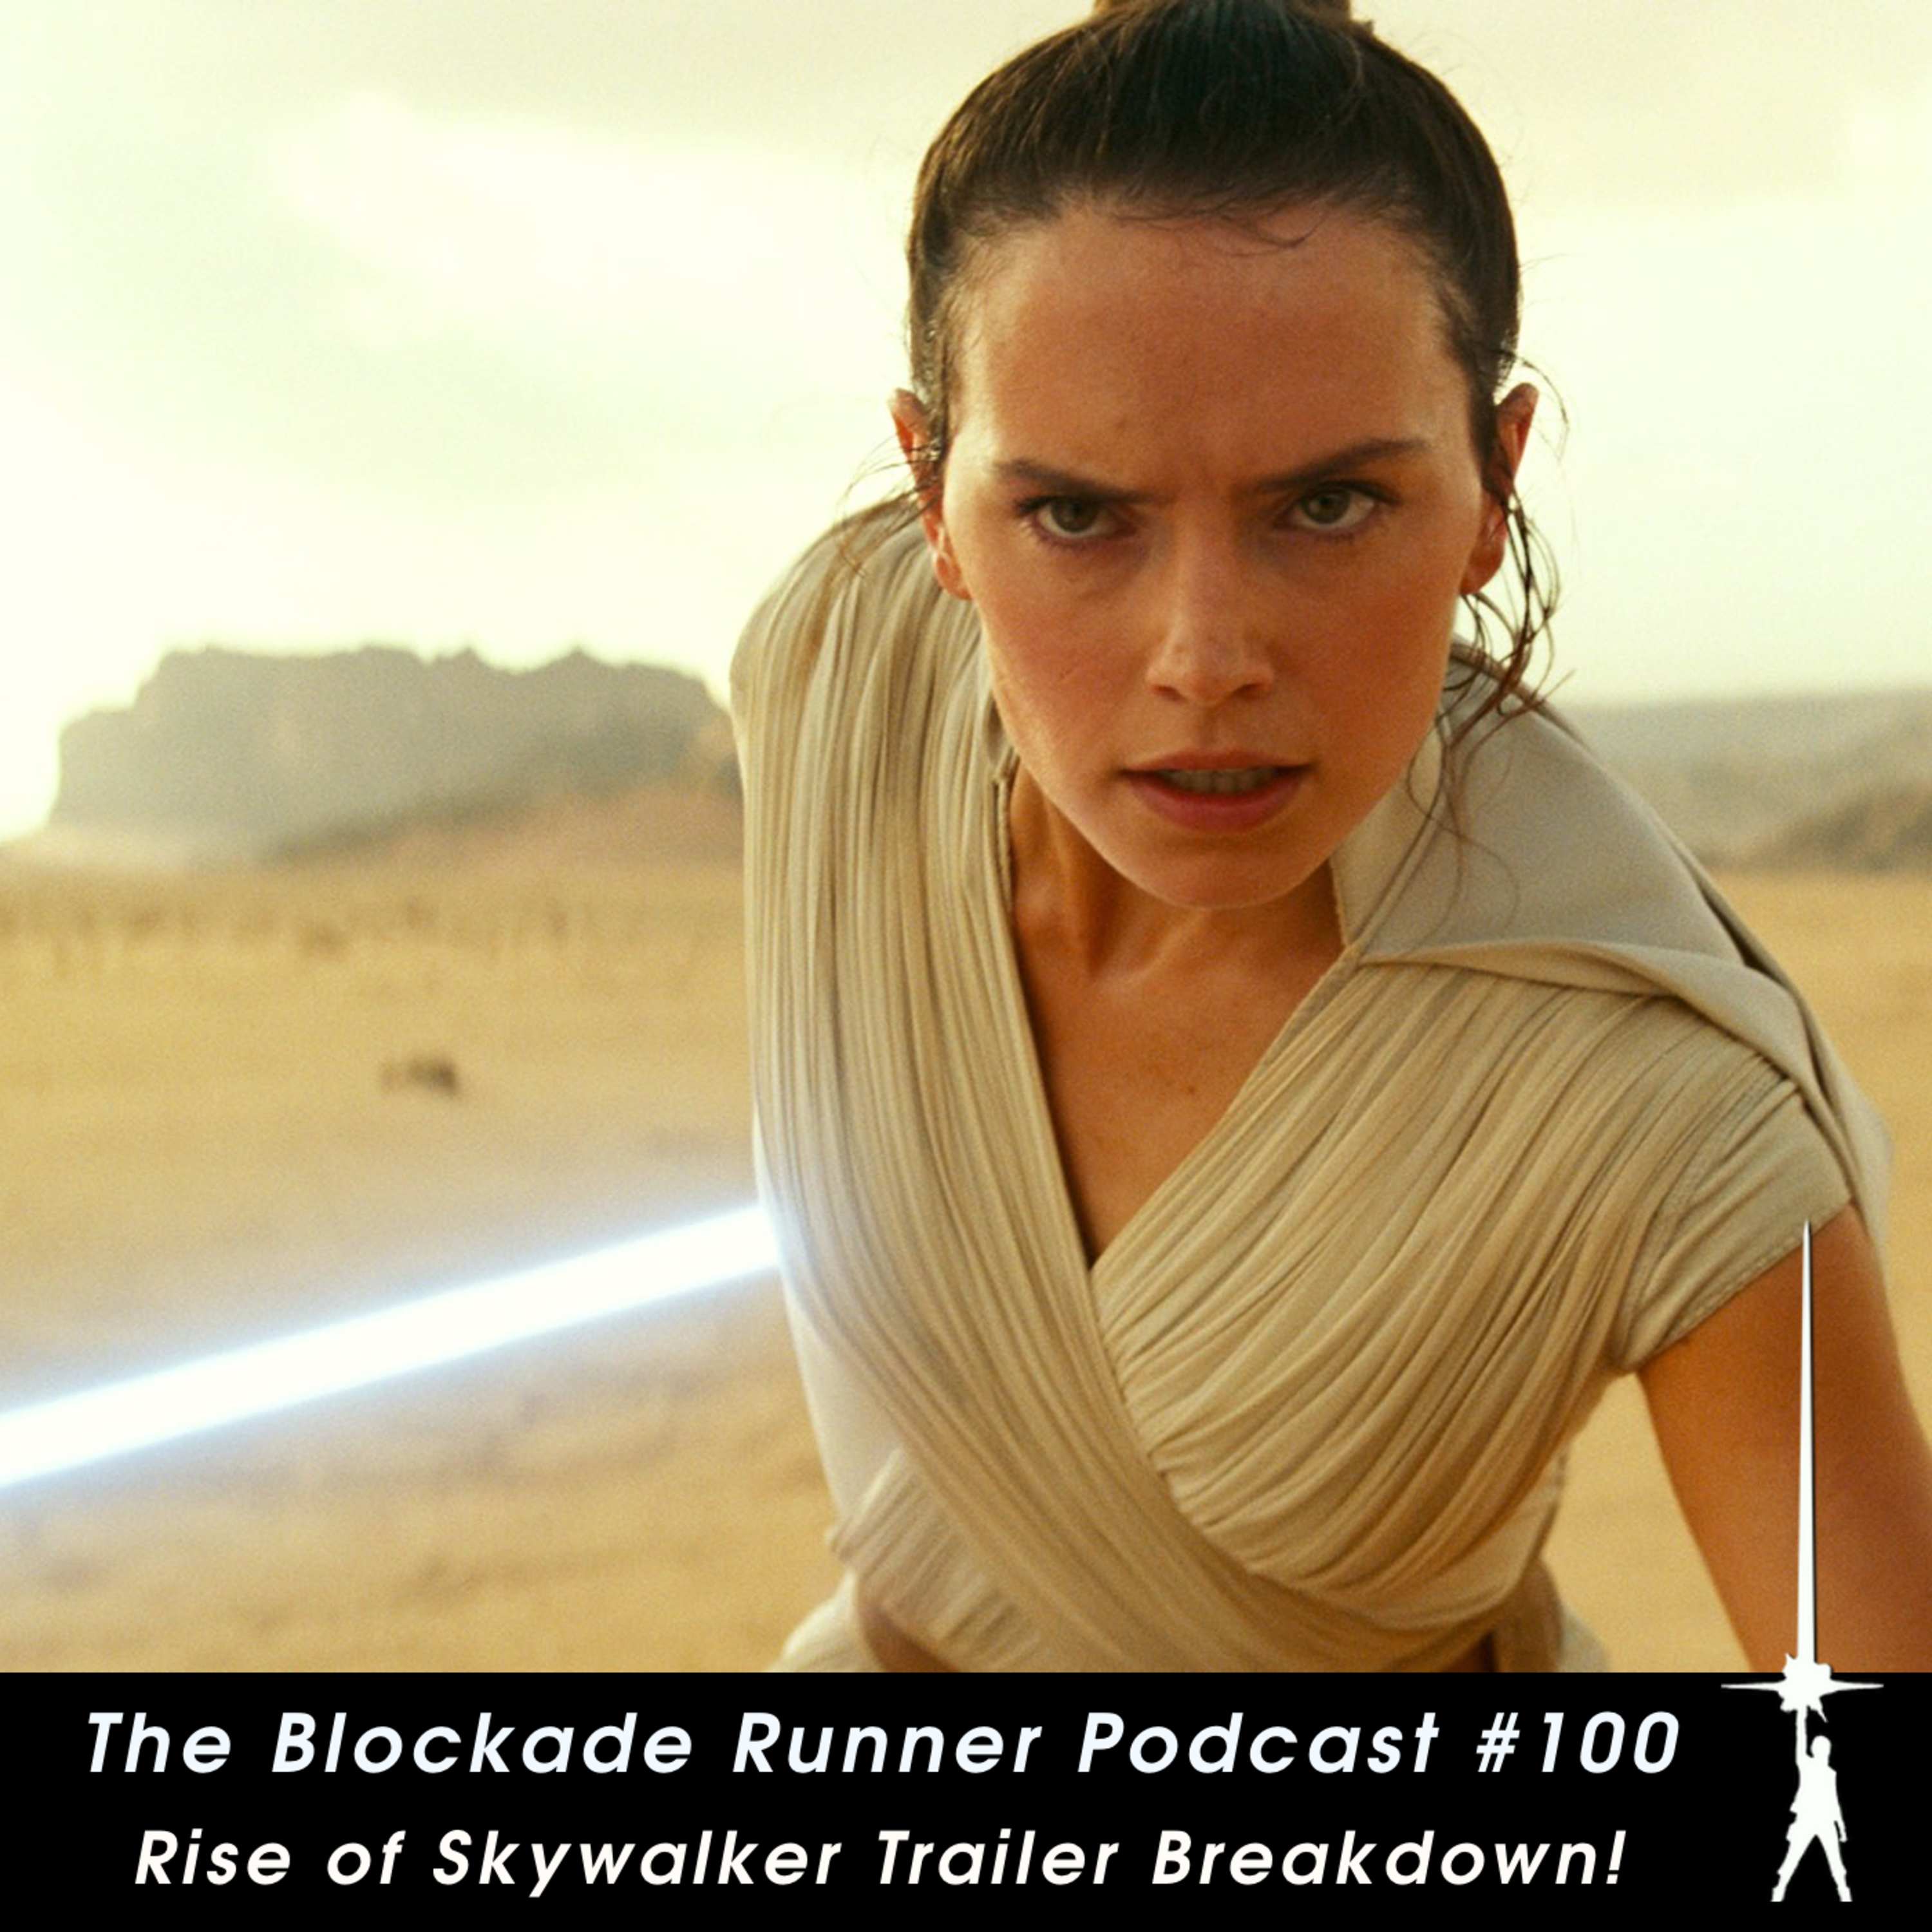 Rise of Skywalker Trailer Breakdown or Maybe Ian McDiarmid Playing Darth Maul In the Prequels Was The Friends We Made Along the Way - The Blockade Runner Podcast #100